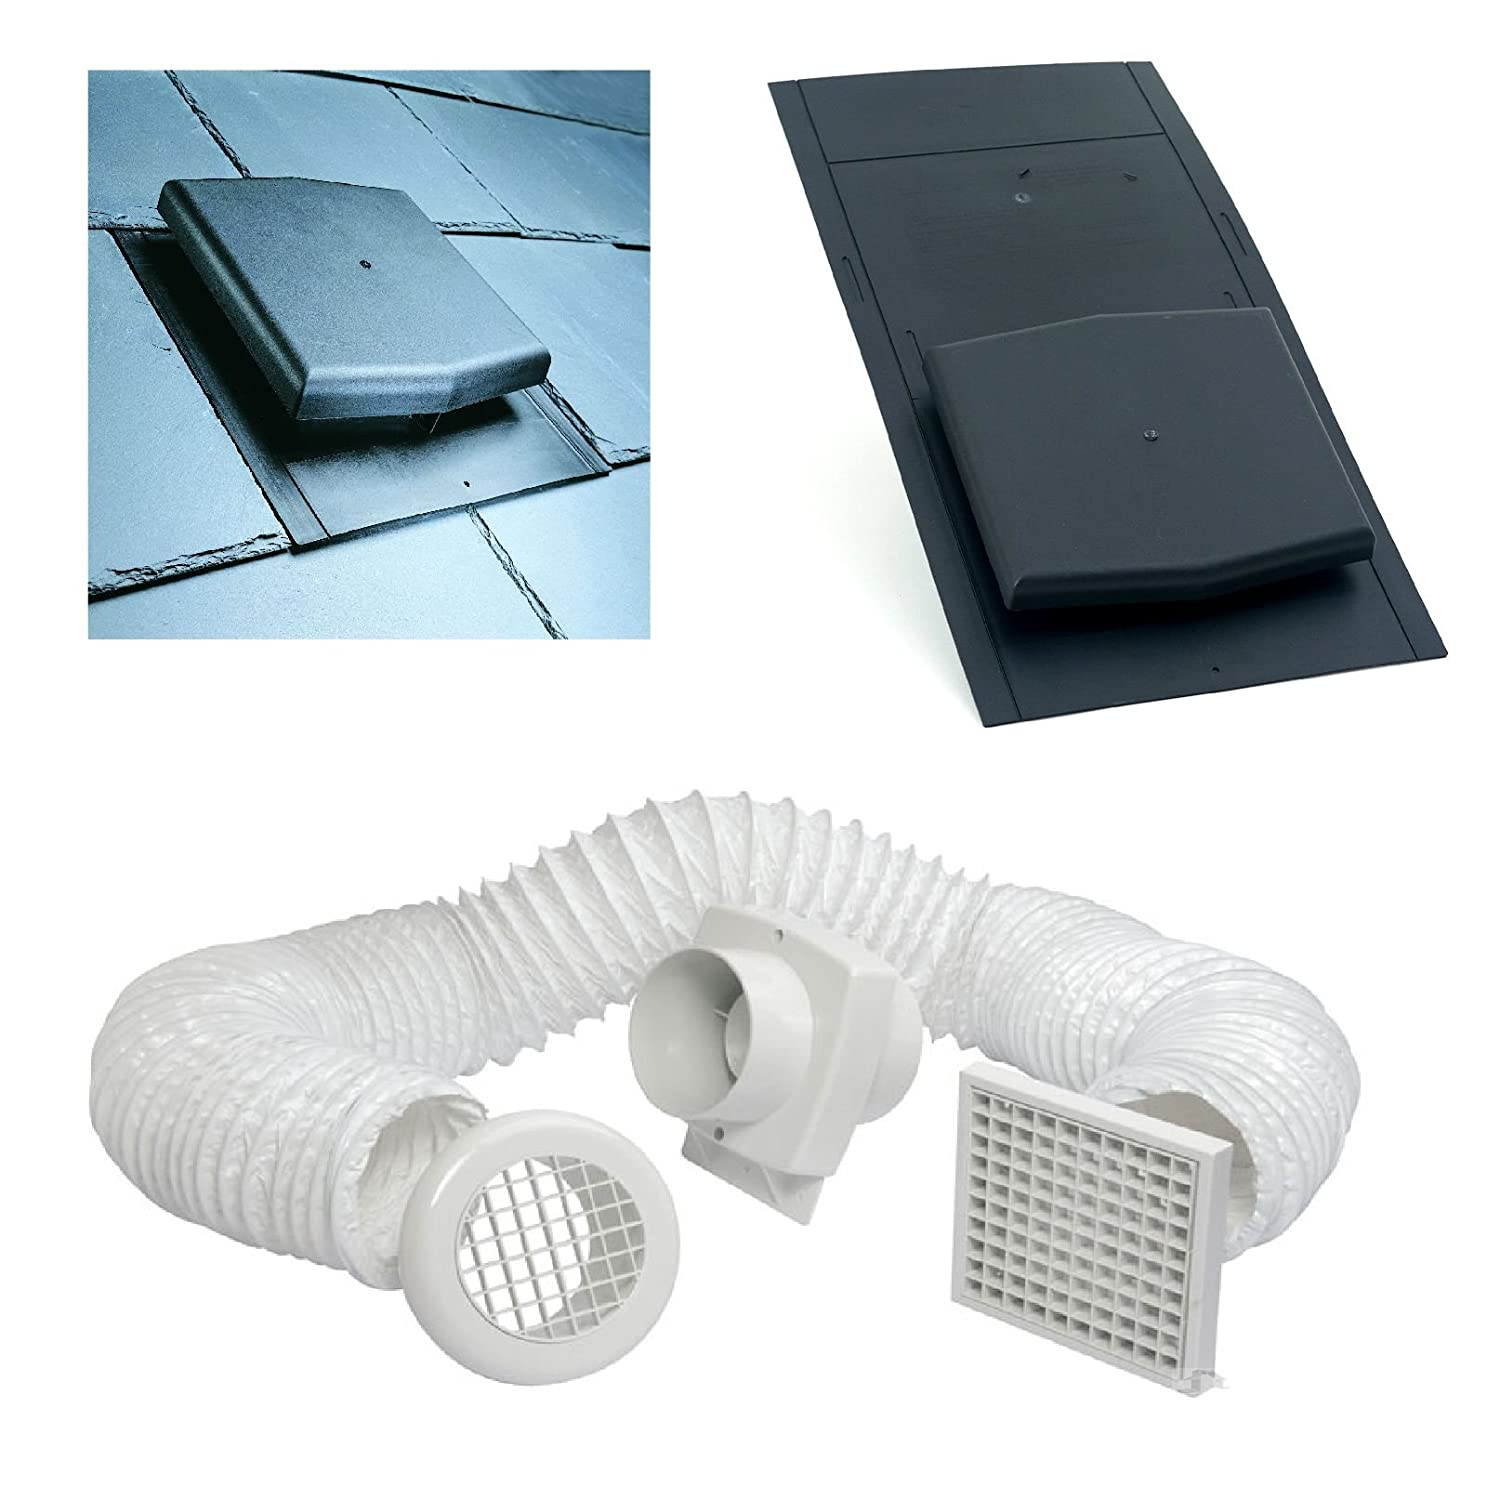 Roof Tile Extractor Vent Slate Roof Tile Vent Inline